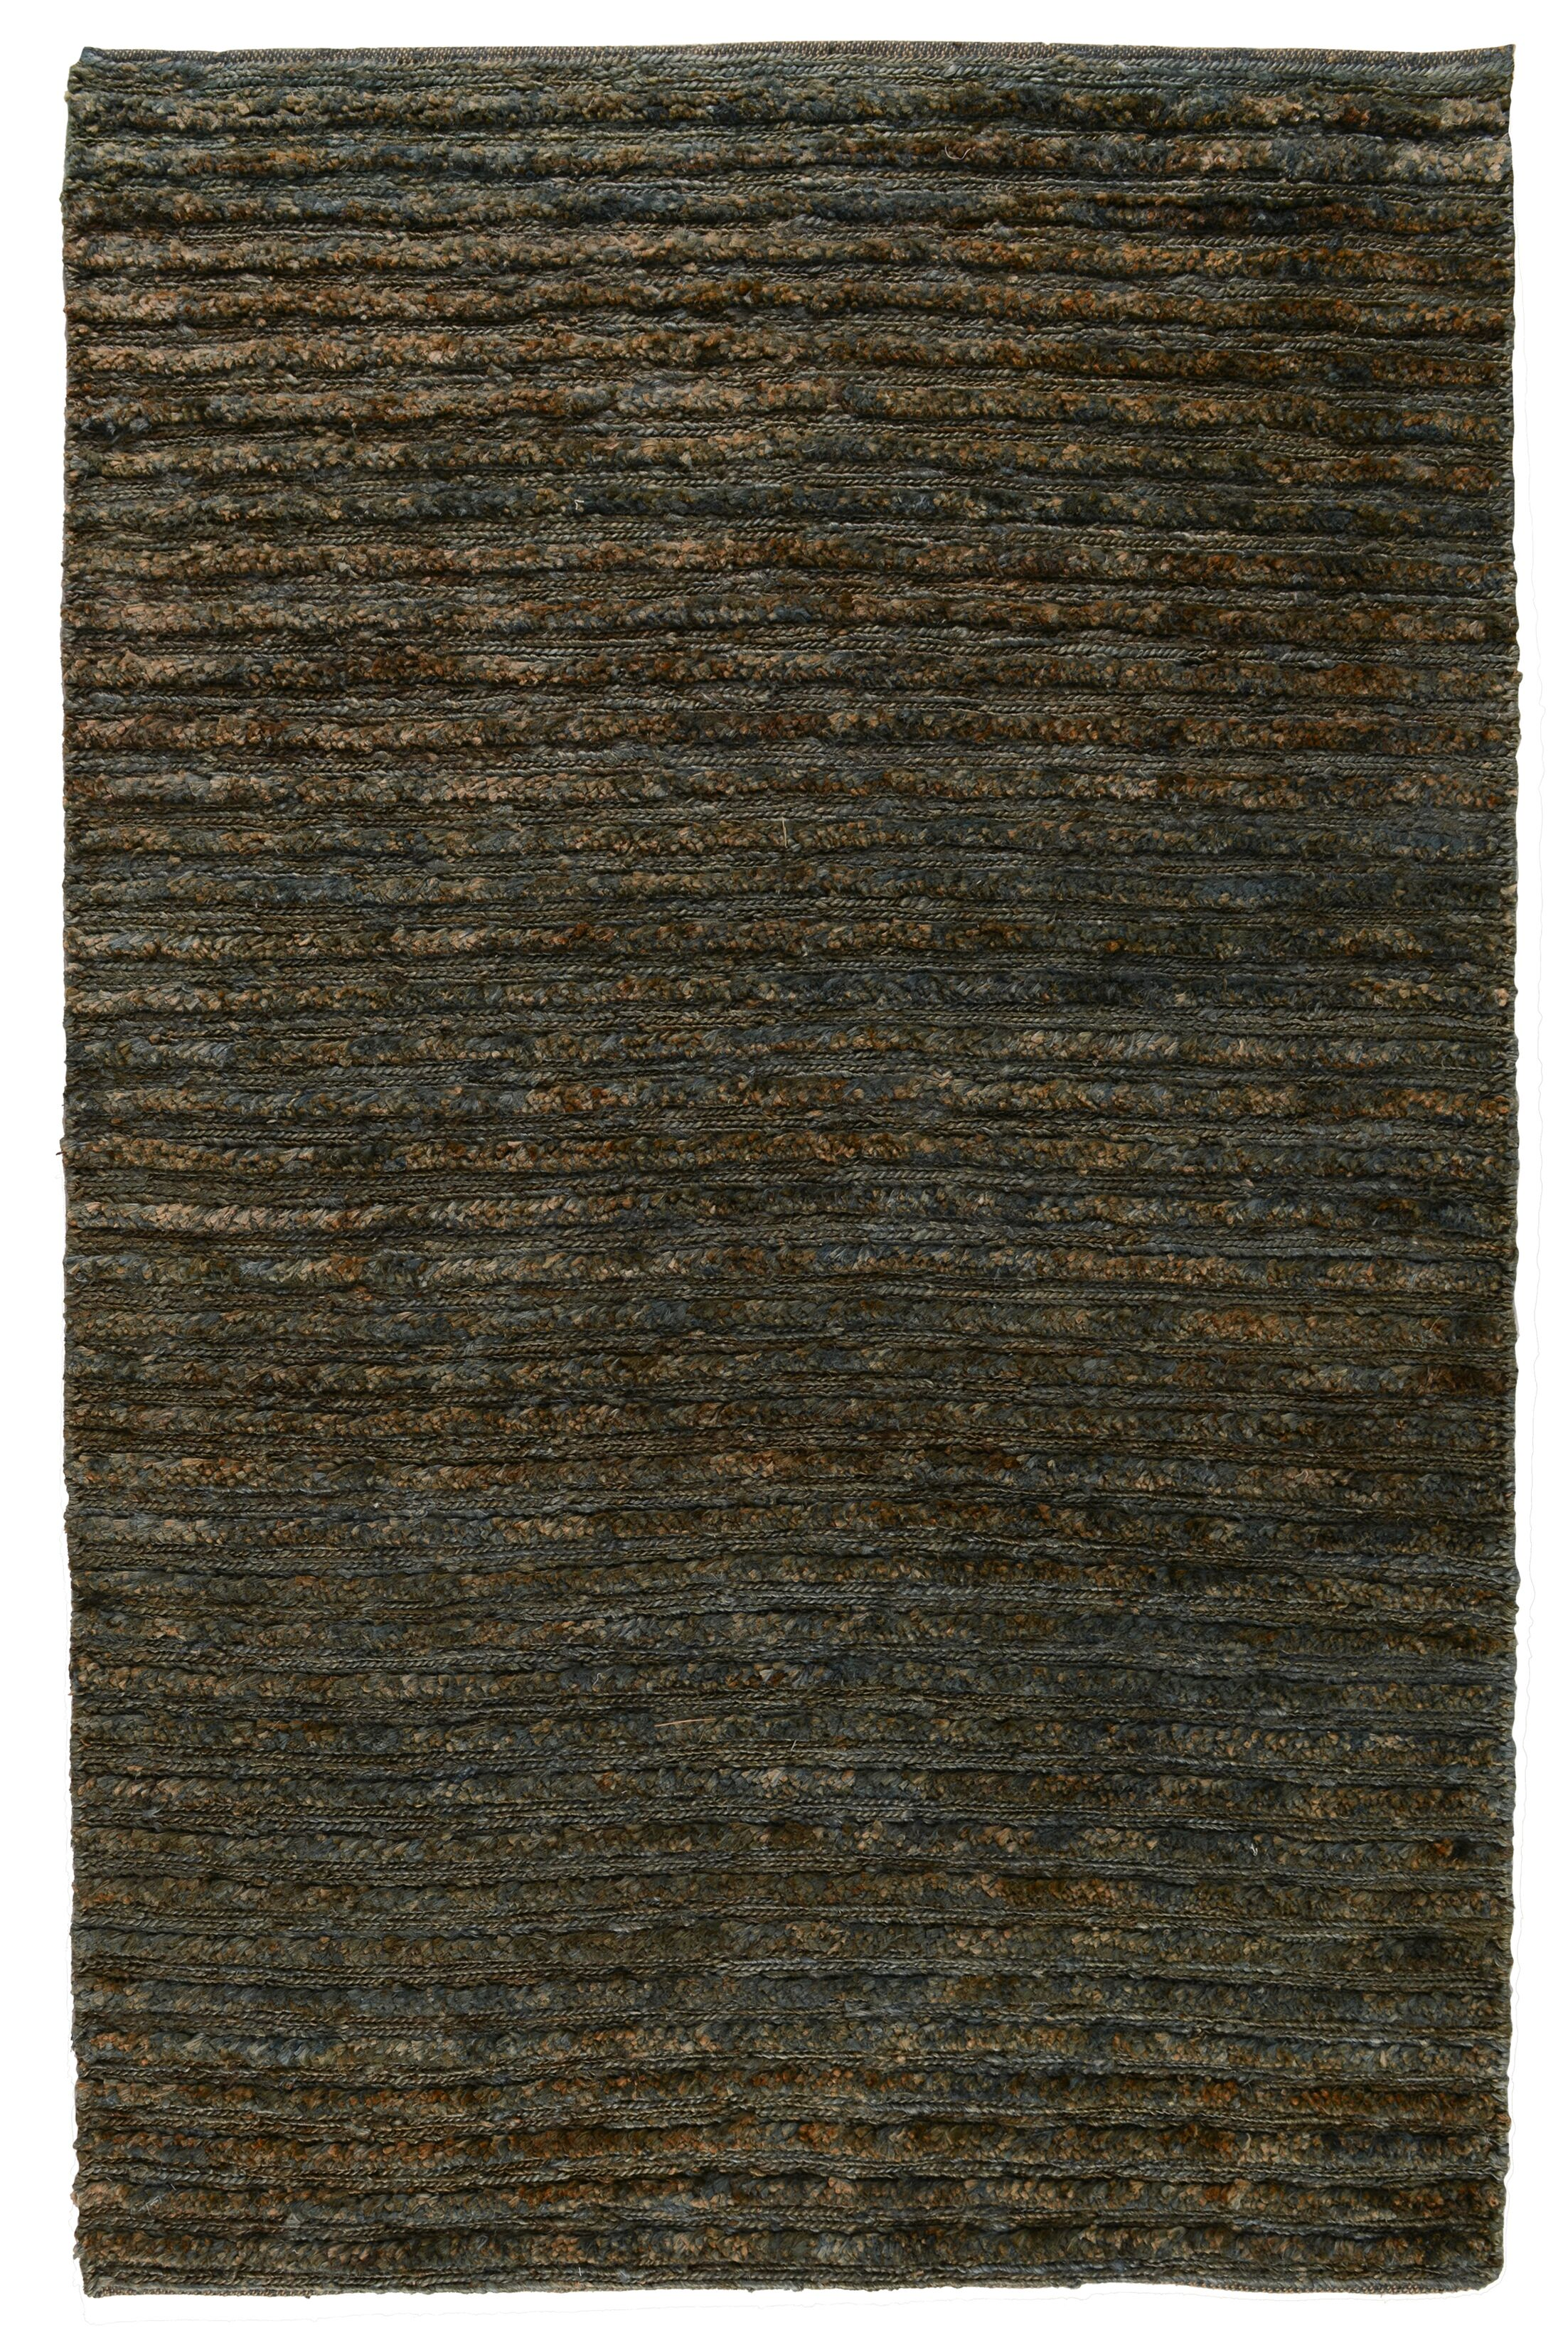 Marion Hand-Woven Ombry Blue/Brown Area Rug Rug Size: 9' x 12'